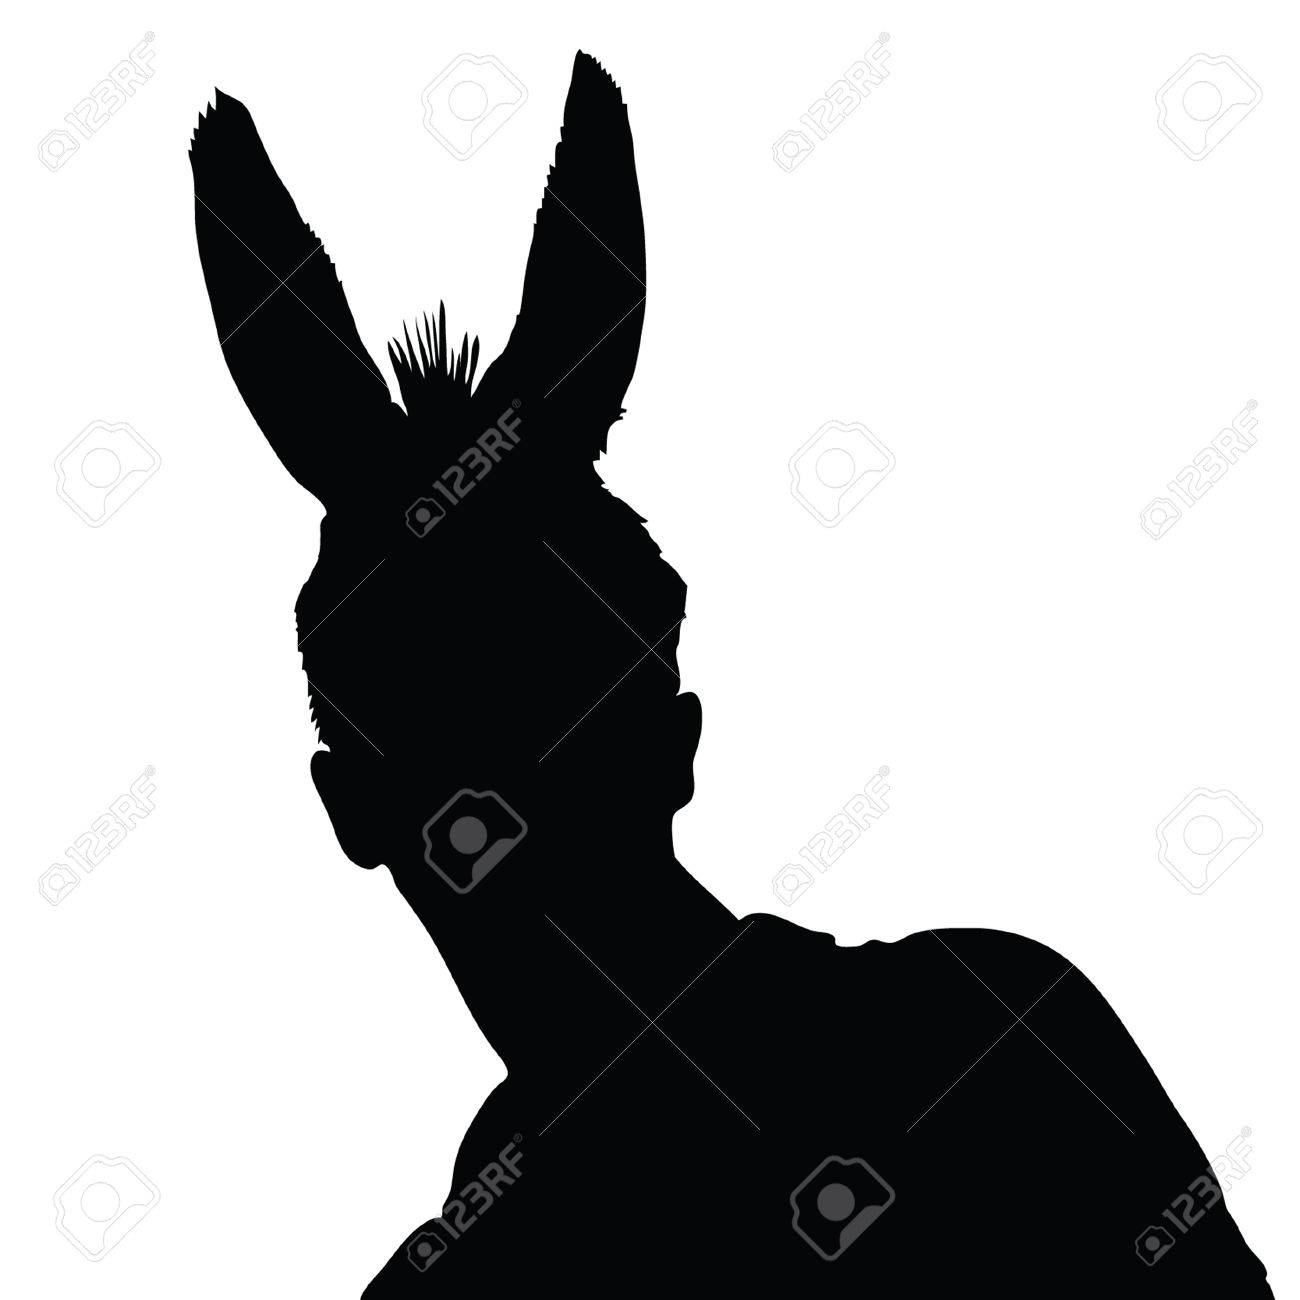 Man With Donkey Ears Vector Illustration Royalty Free Cliparts.